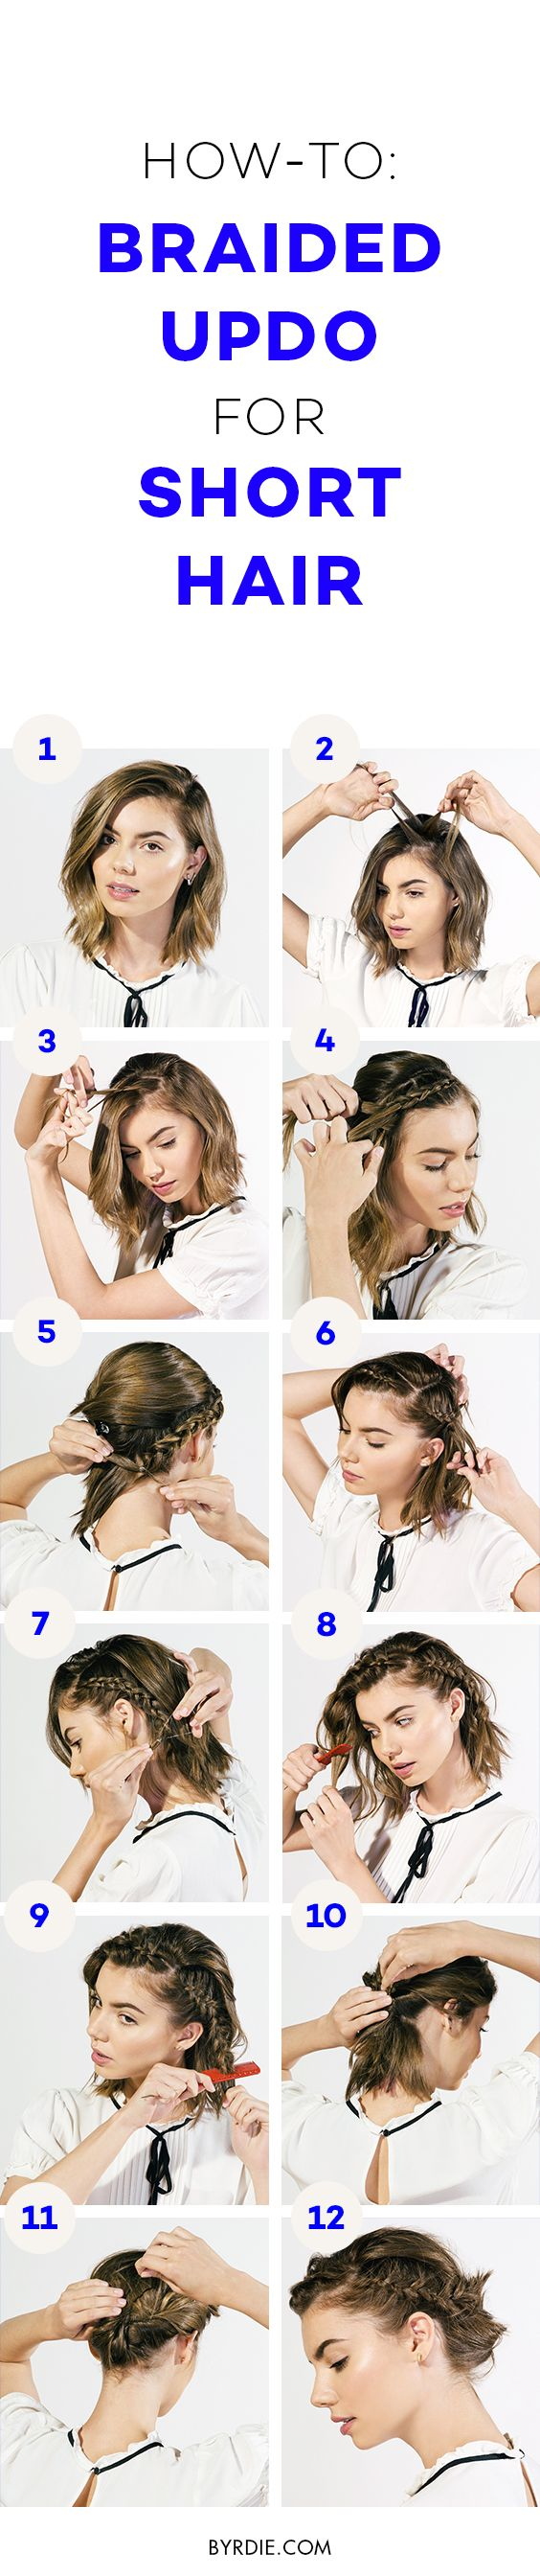 How to braid short hair